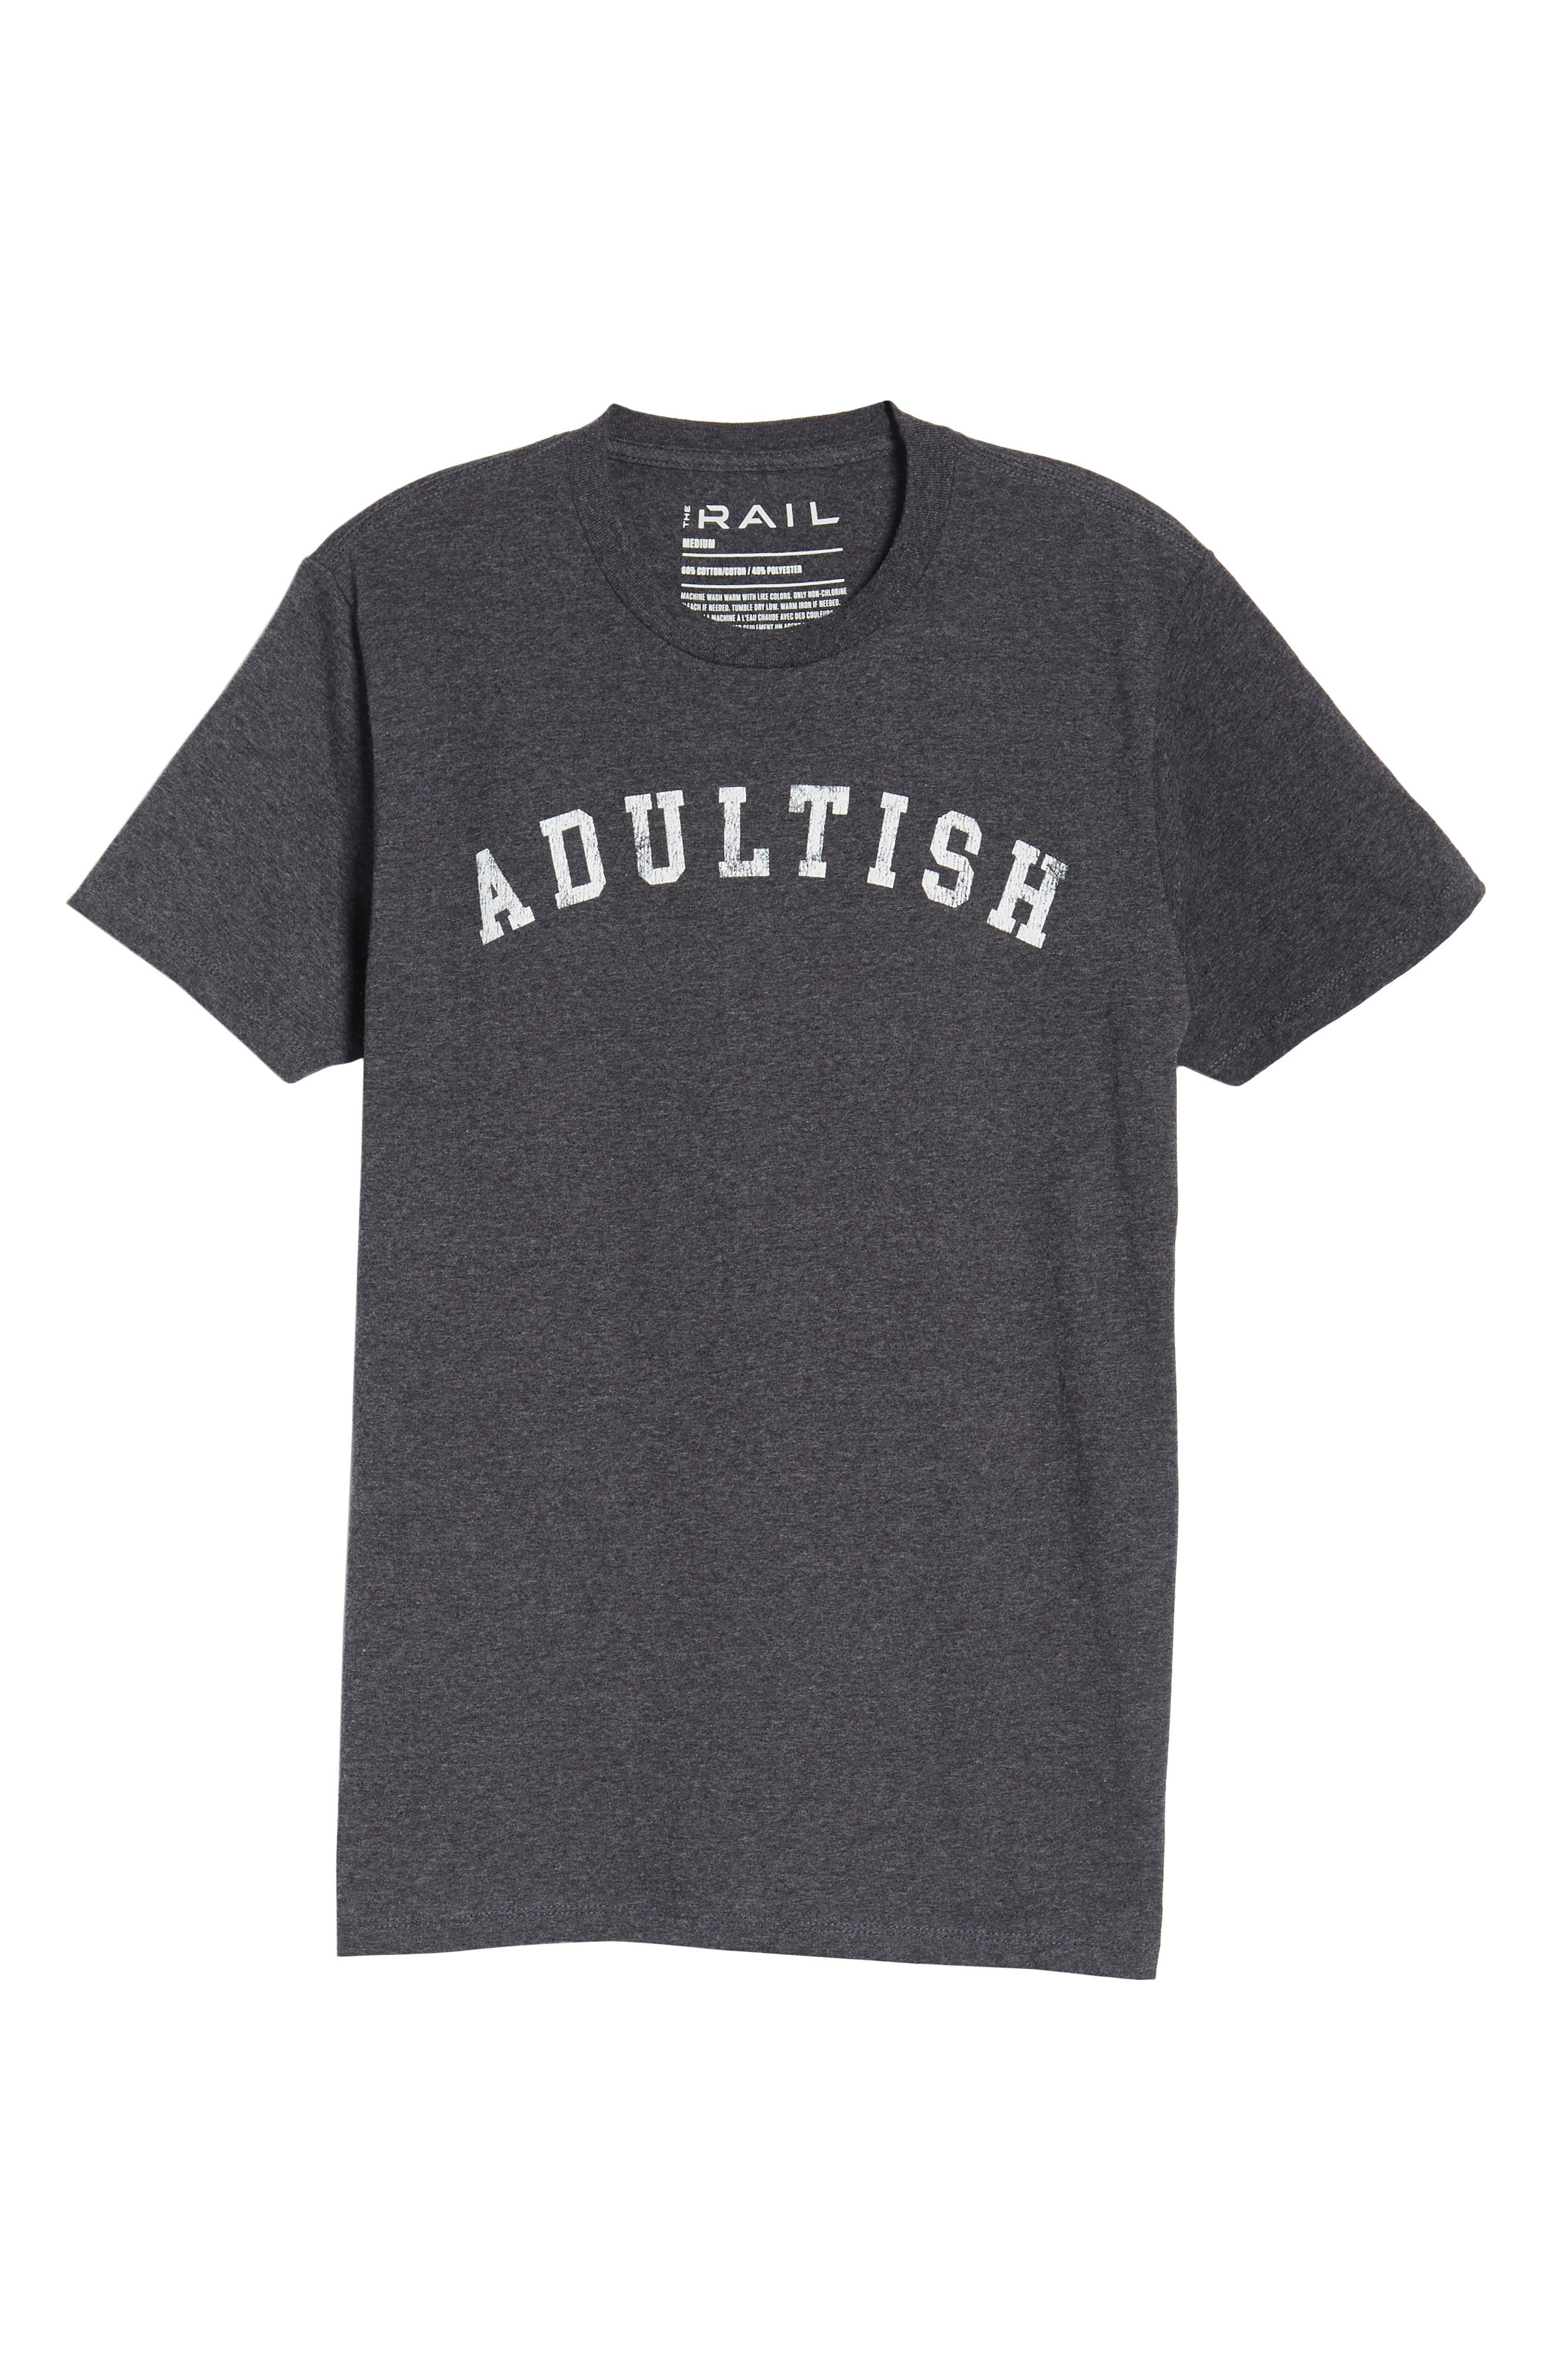 Adultish T-Shirt,                             Alternate thumbnail 6, color,                             Black Tee Adultish